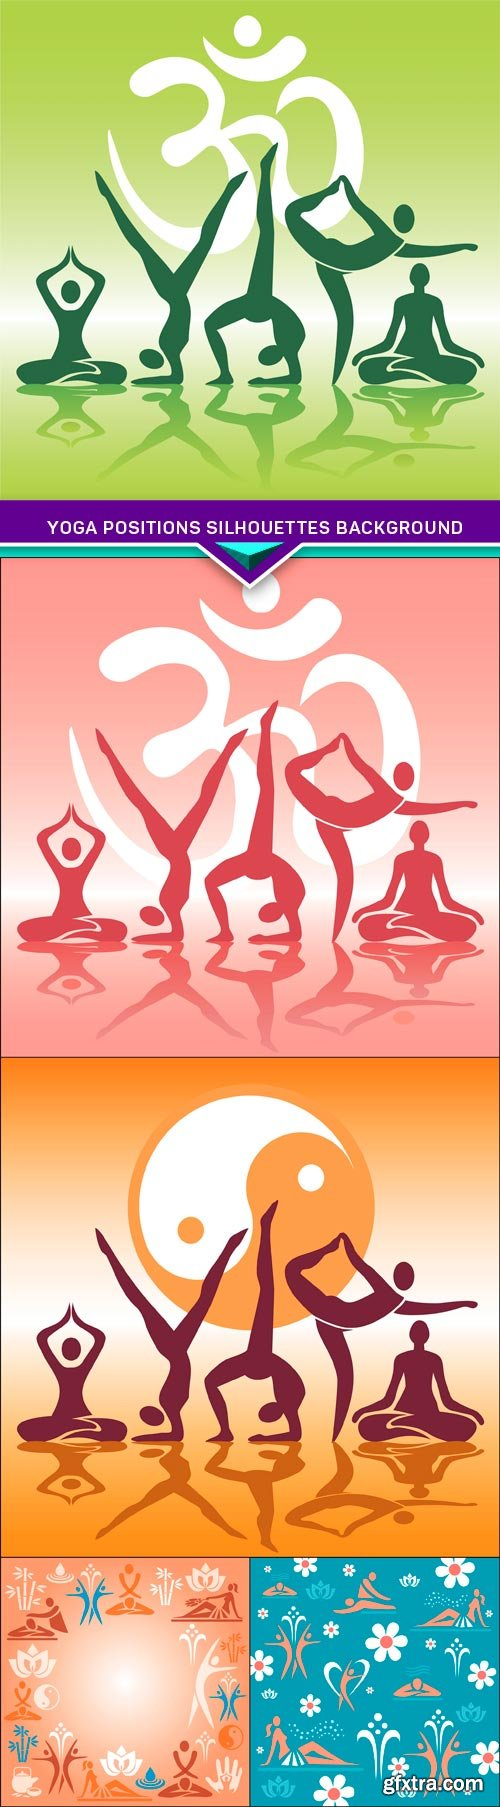 Yoga positions silhouettes background 5X EPS